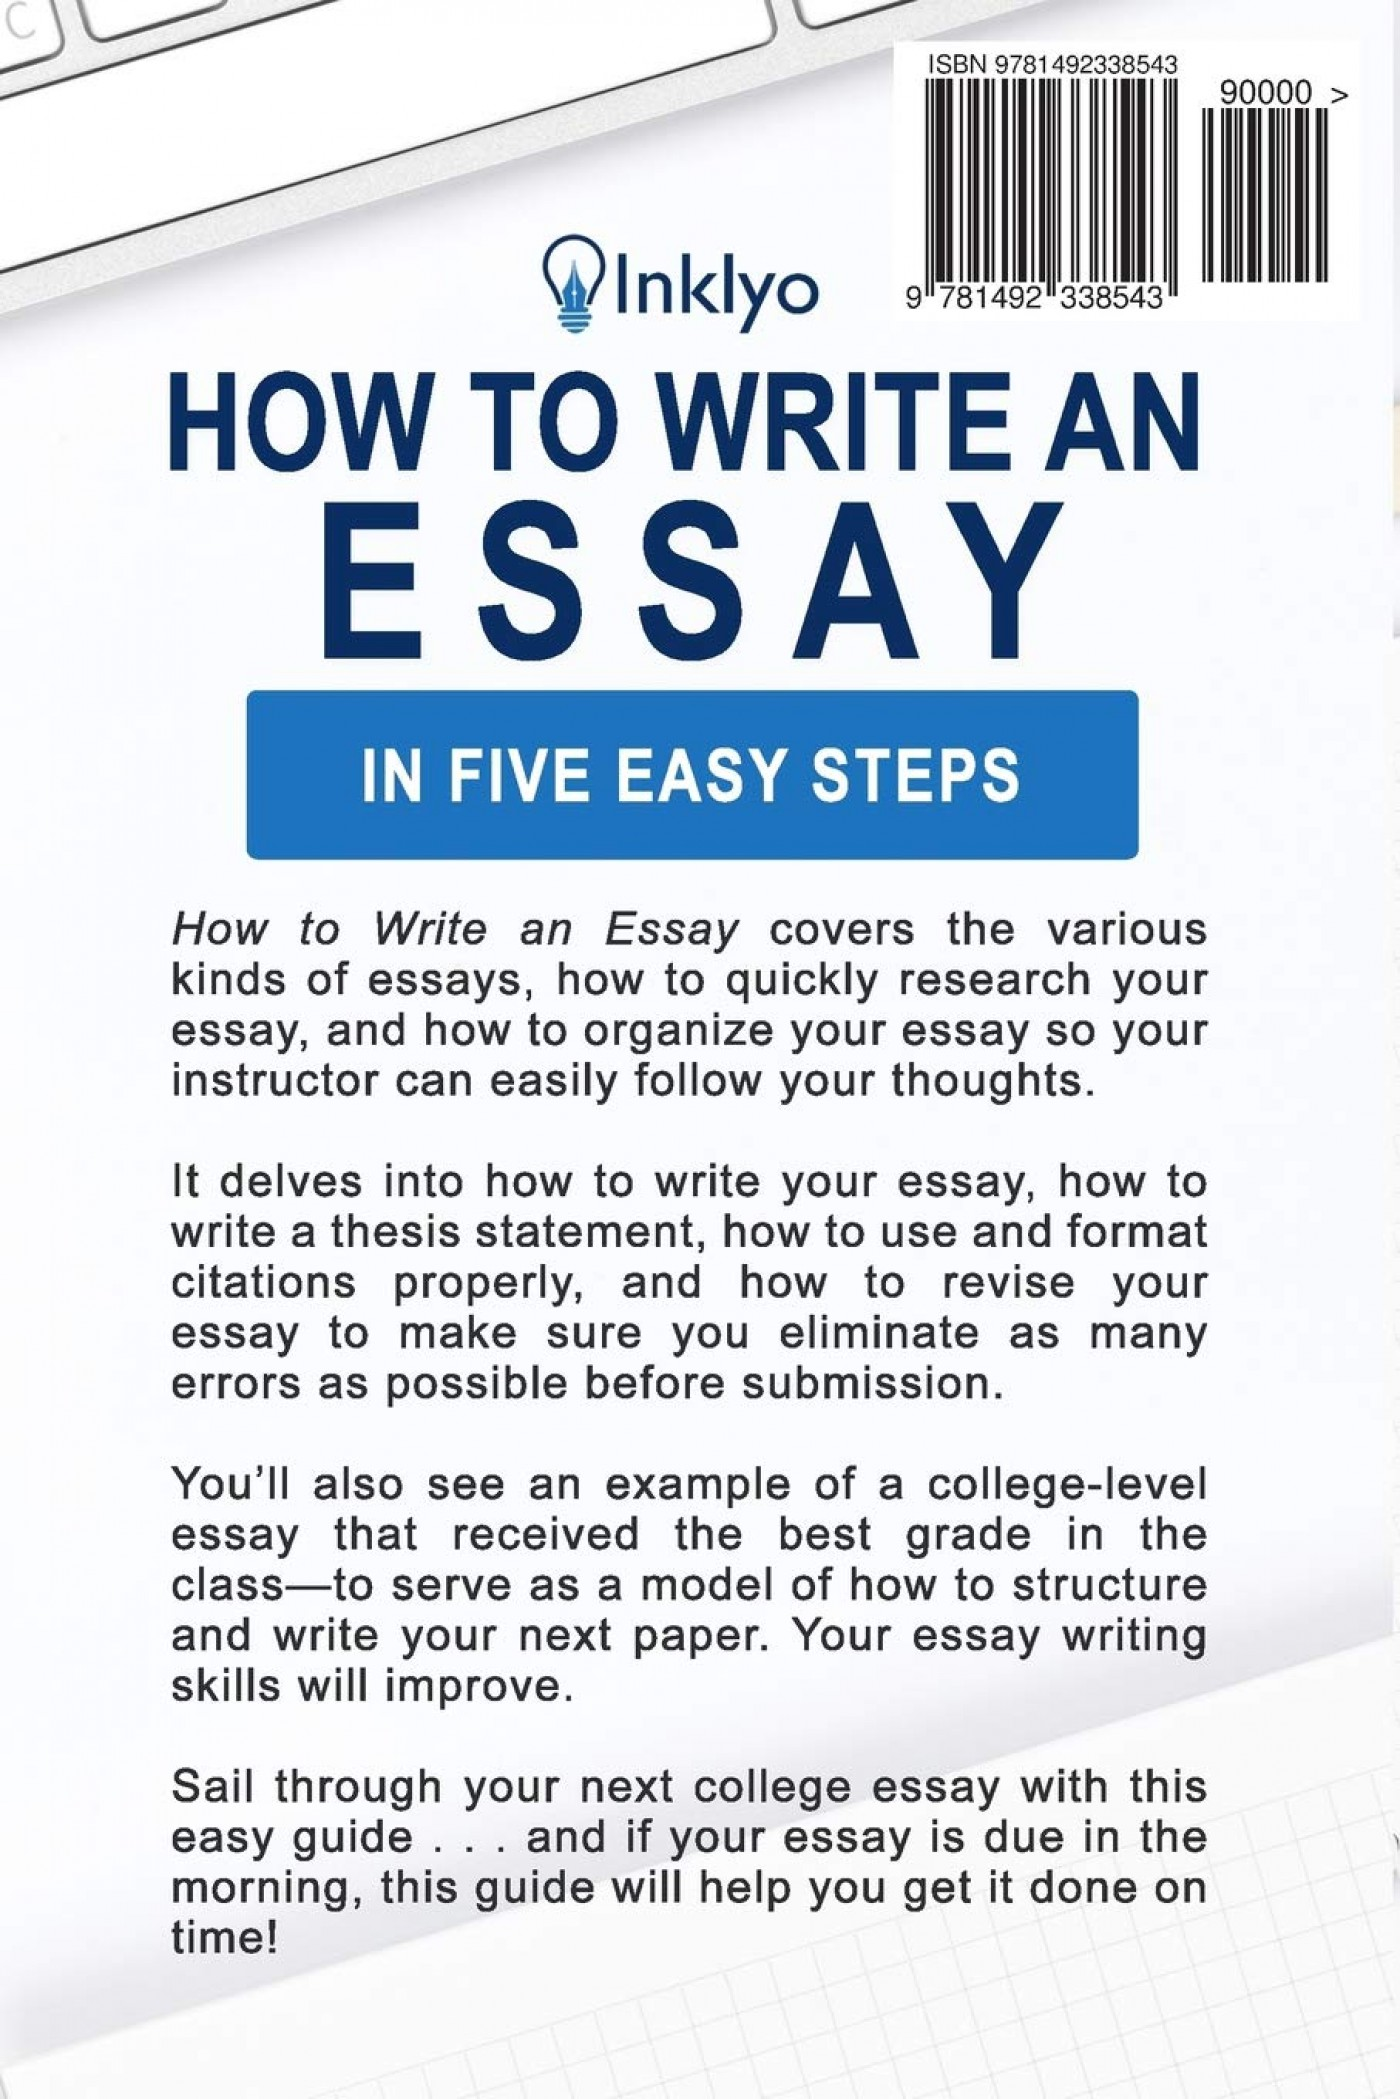 003 How To Write Essay Example Archaicawful A History Research Outline Introduction 1400